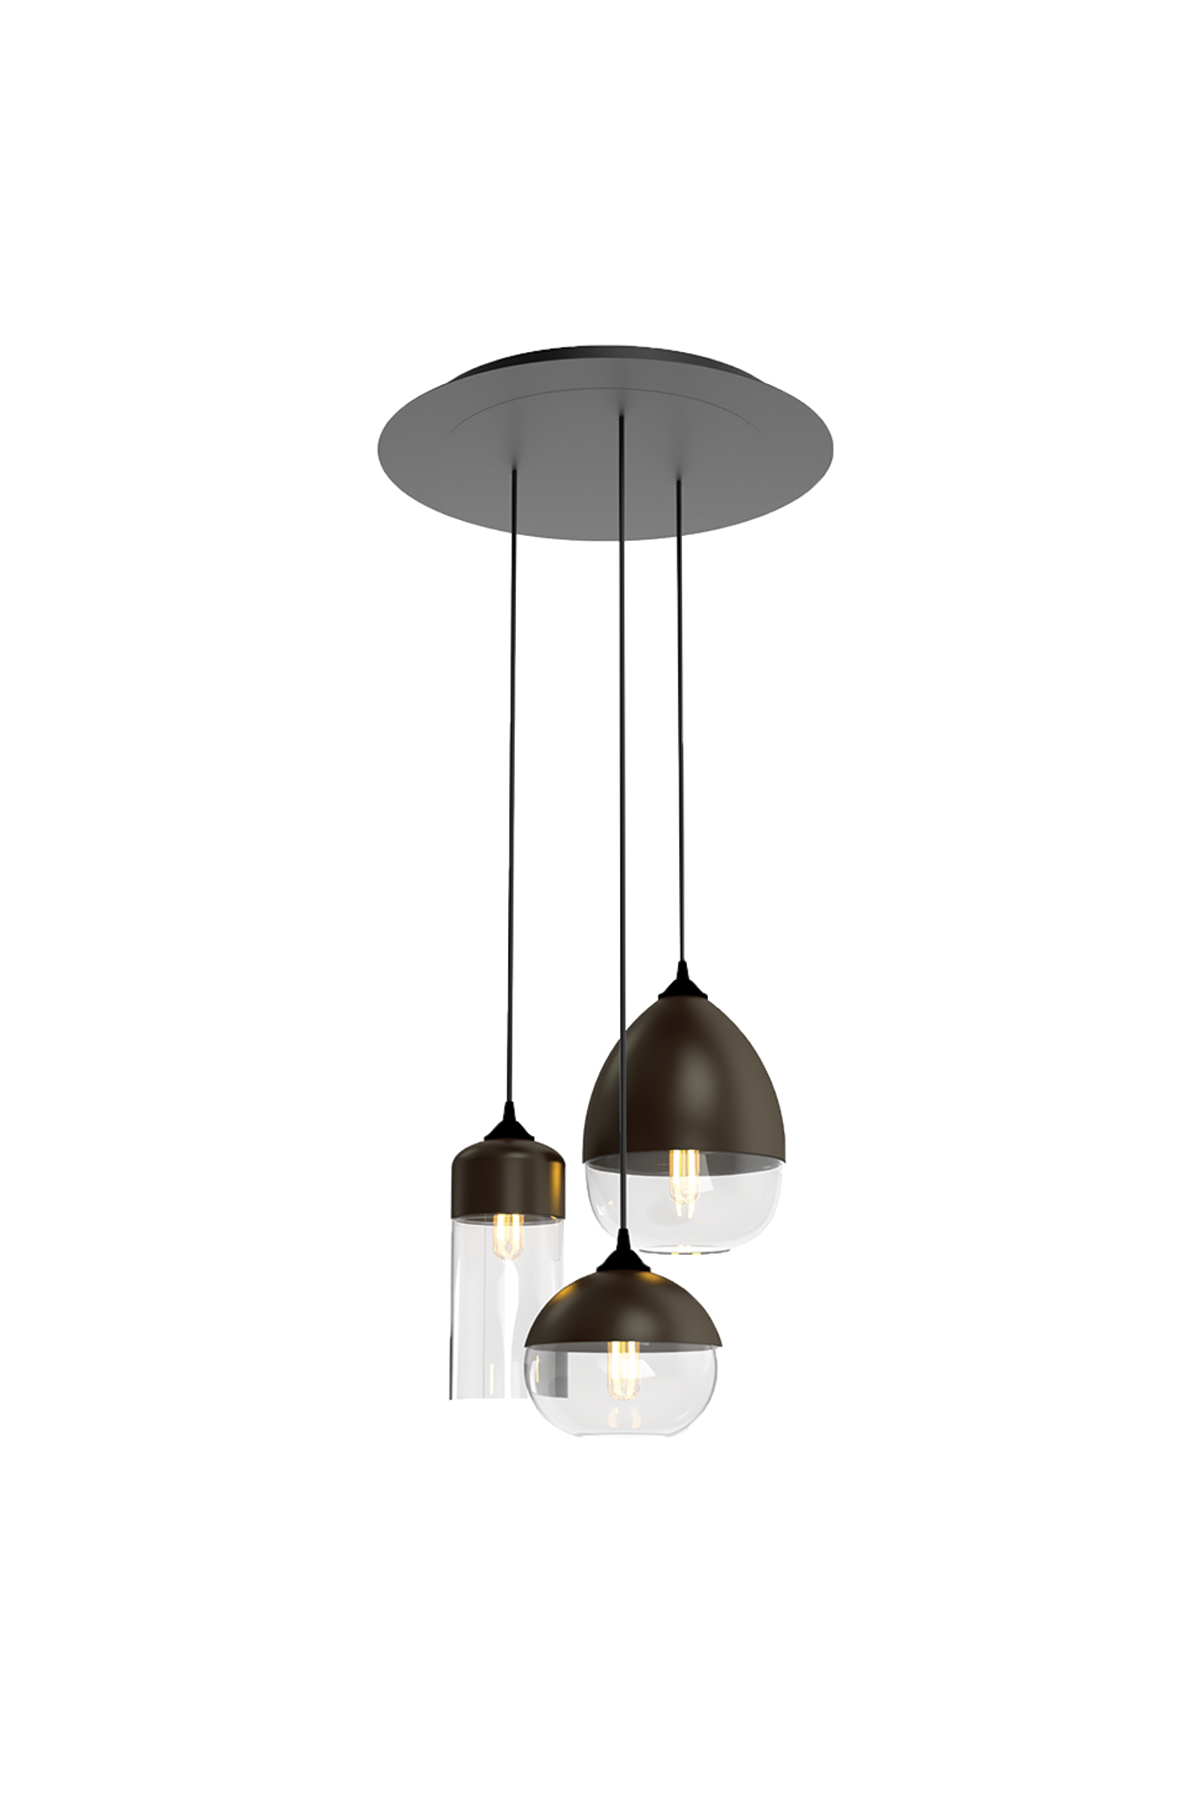 3 Light Round Multi-Pendant Canopy - Product Spec Sheet ↓